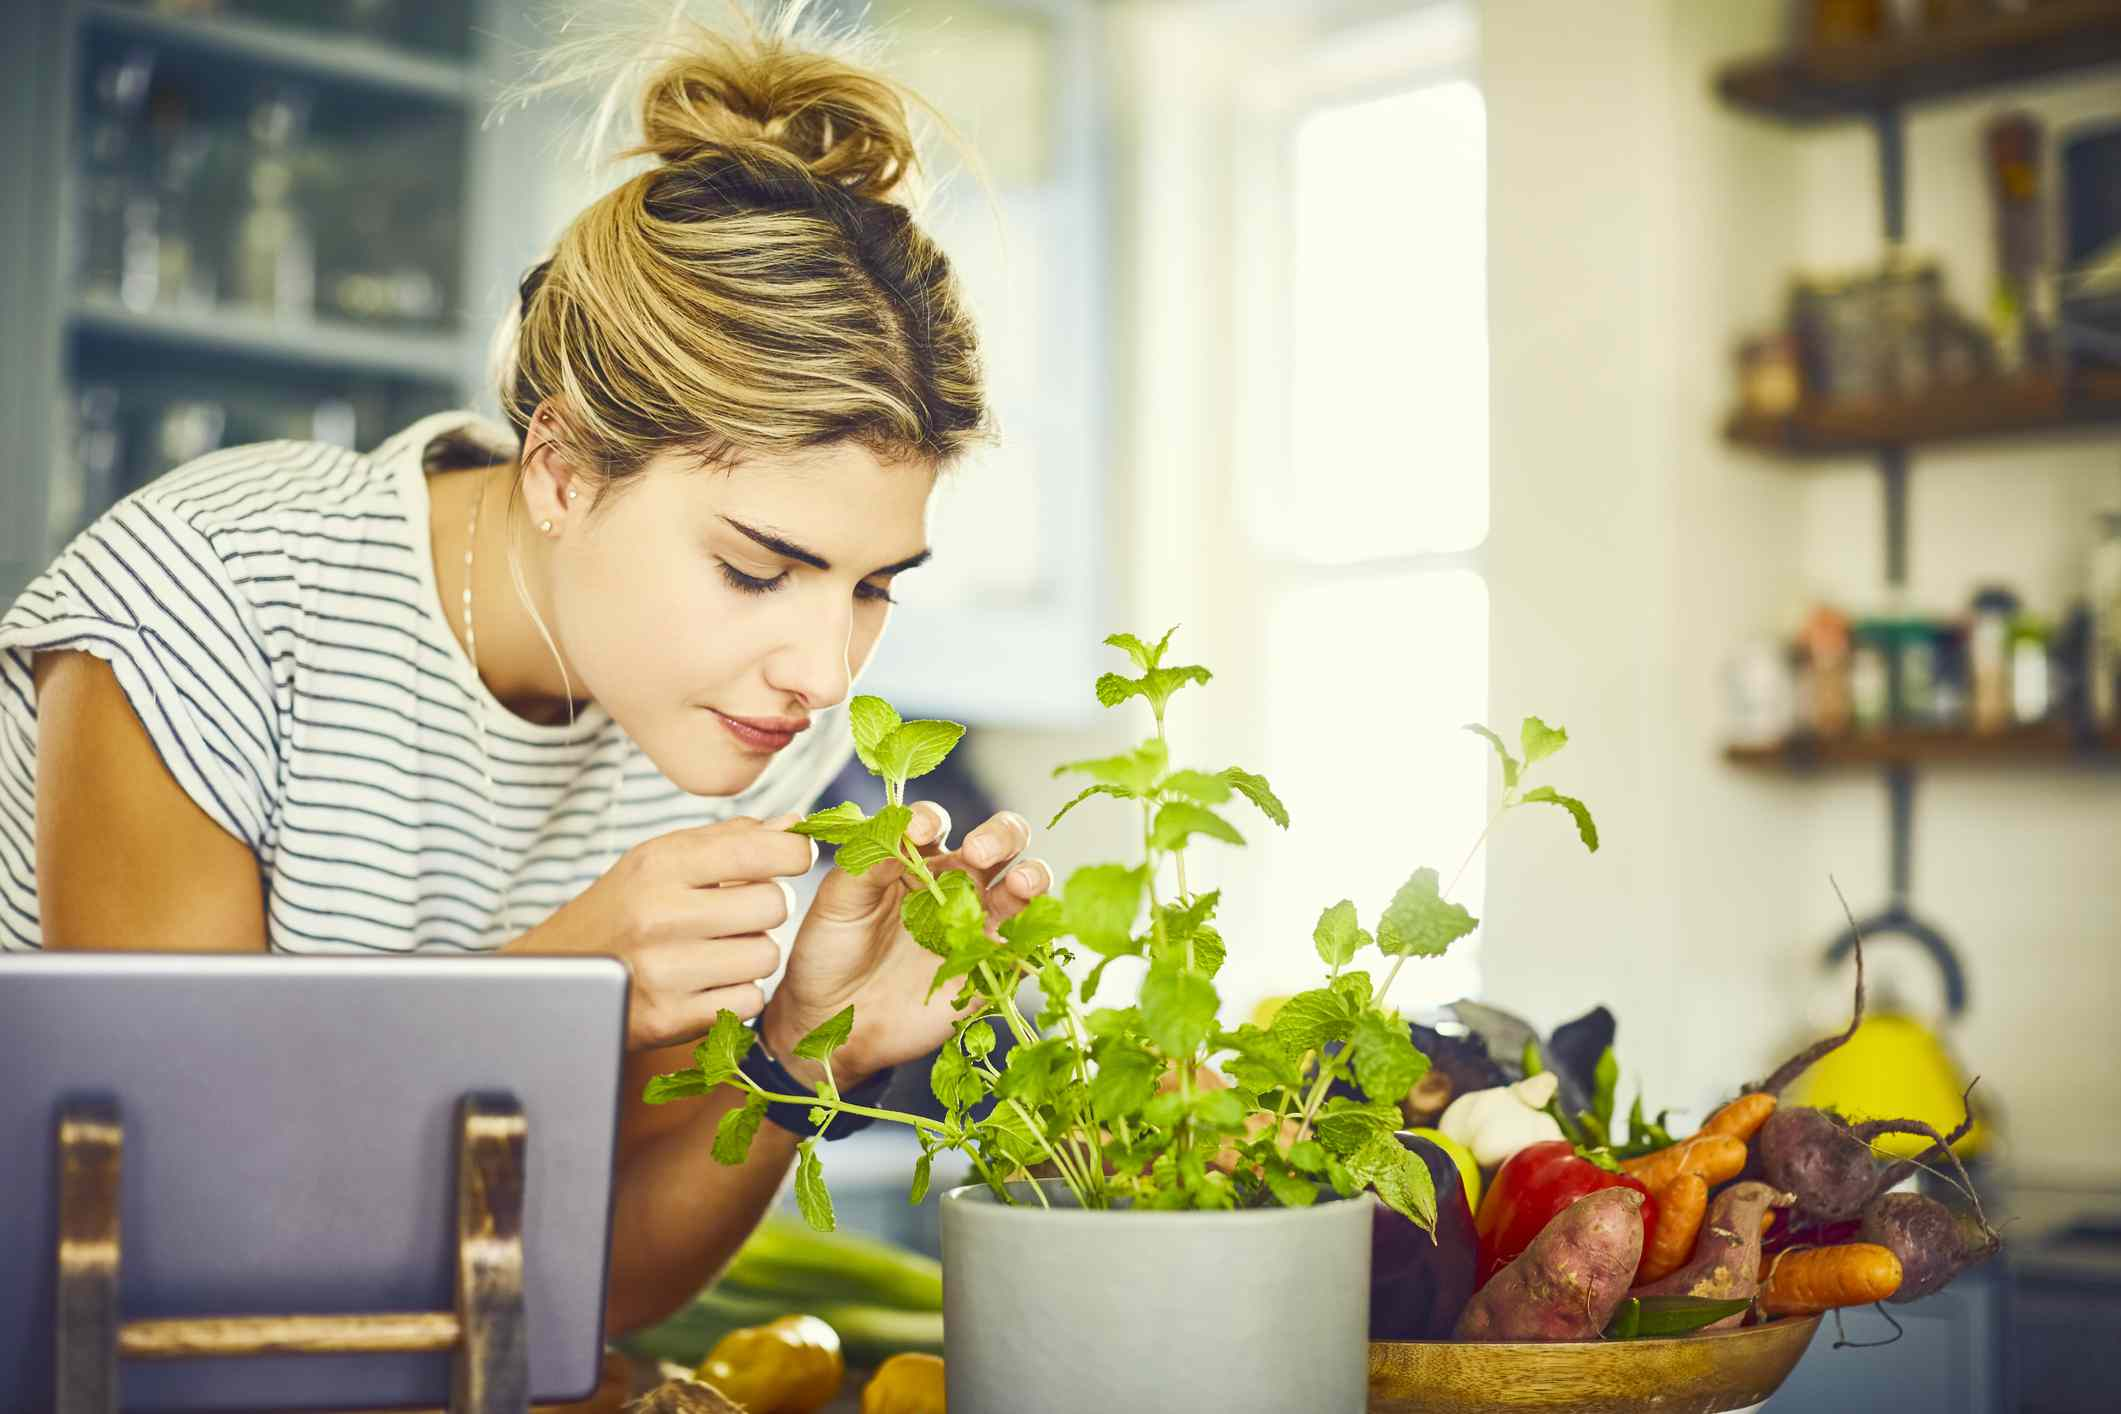 Woman in striped shirt smelling potted mint plant